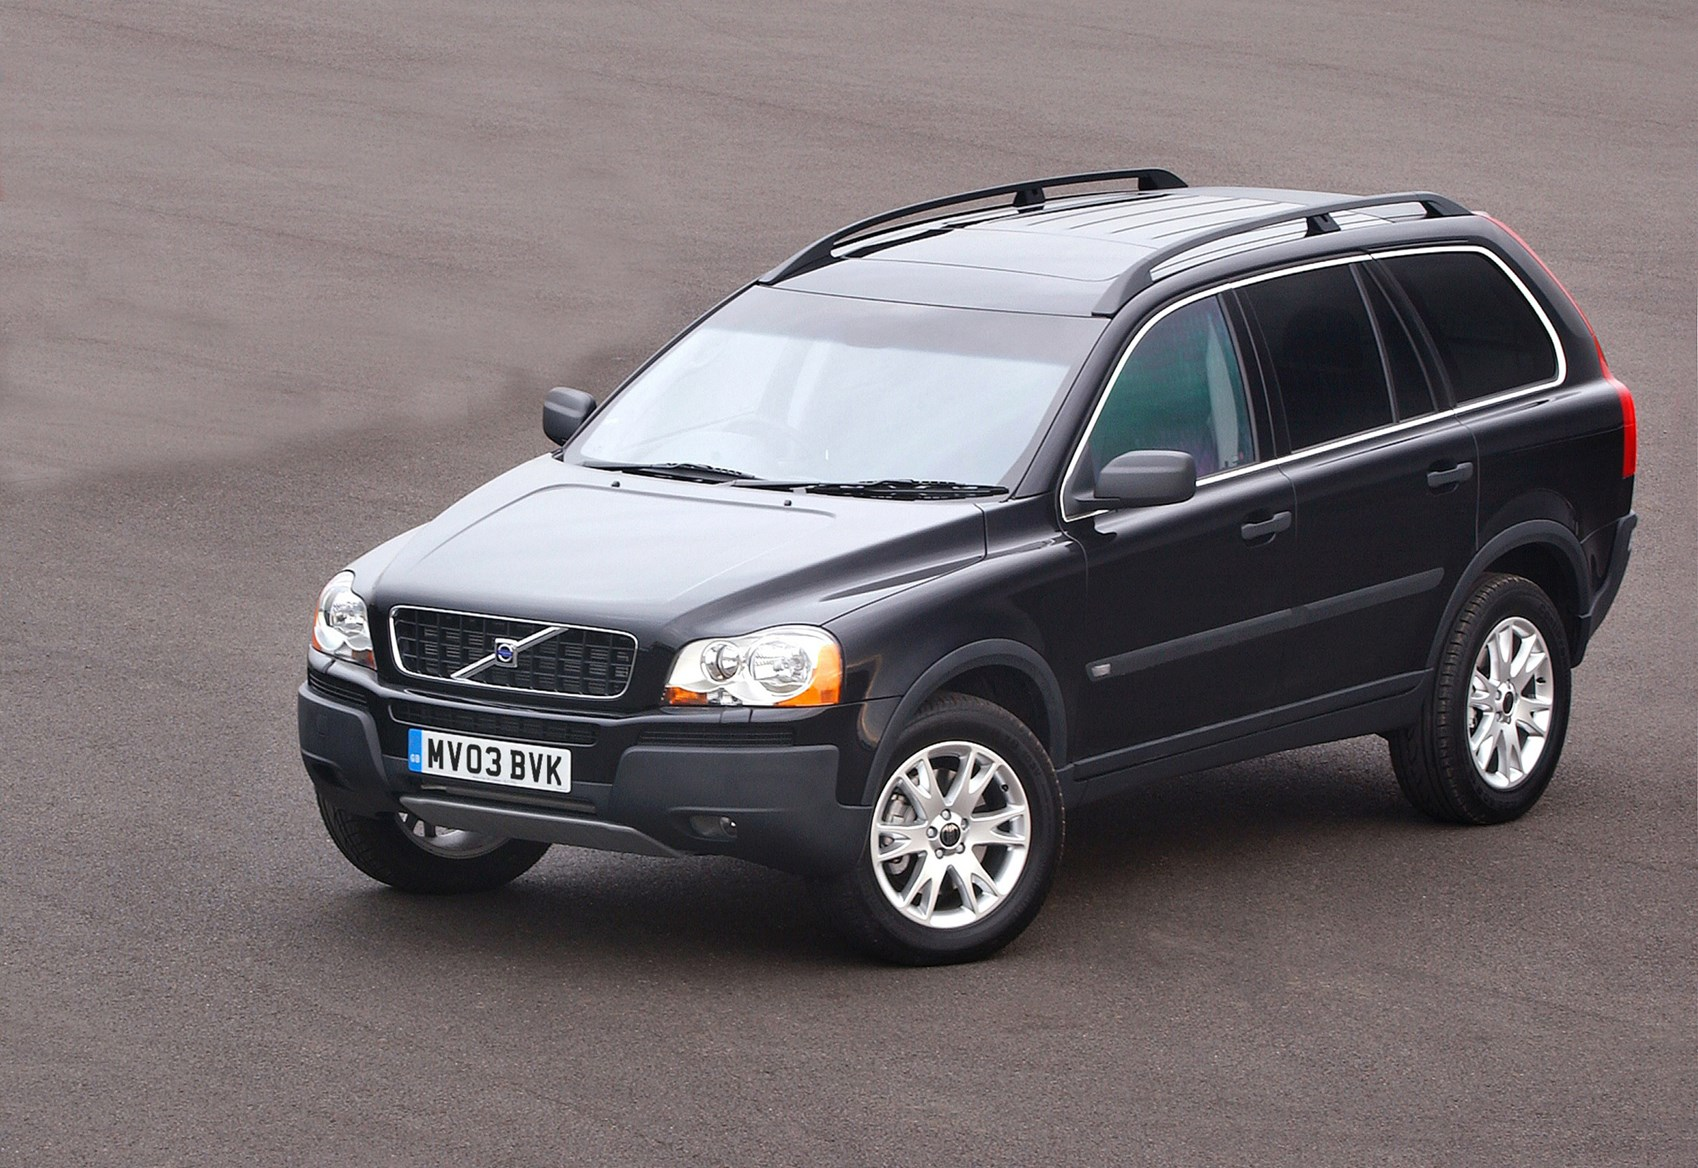 Volvo xc90 estate 2002 2014 running costs parkers how much is it to insure publicscrutiny Image collections